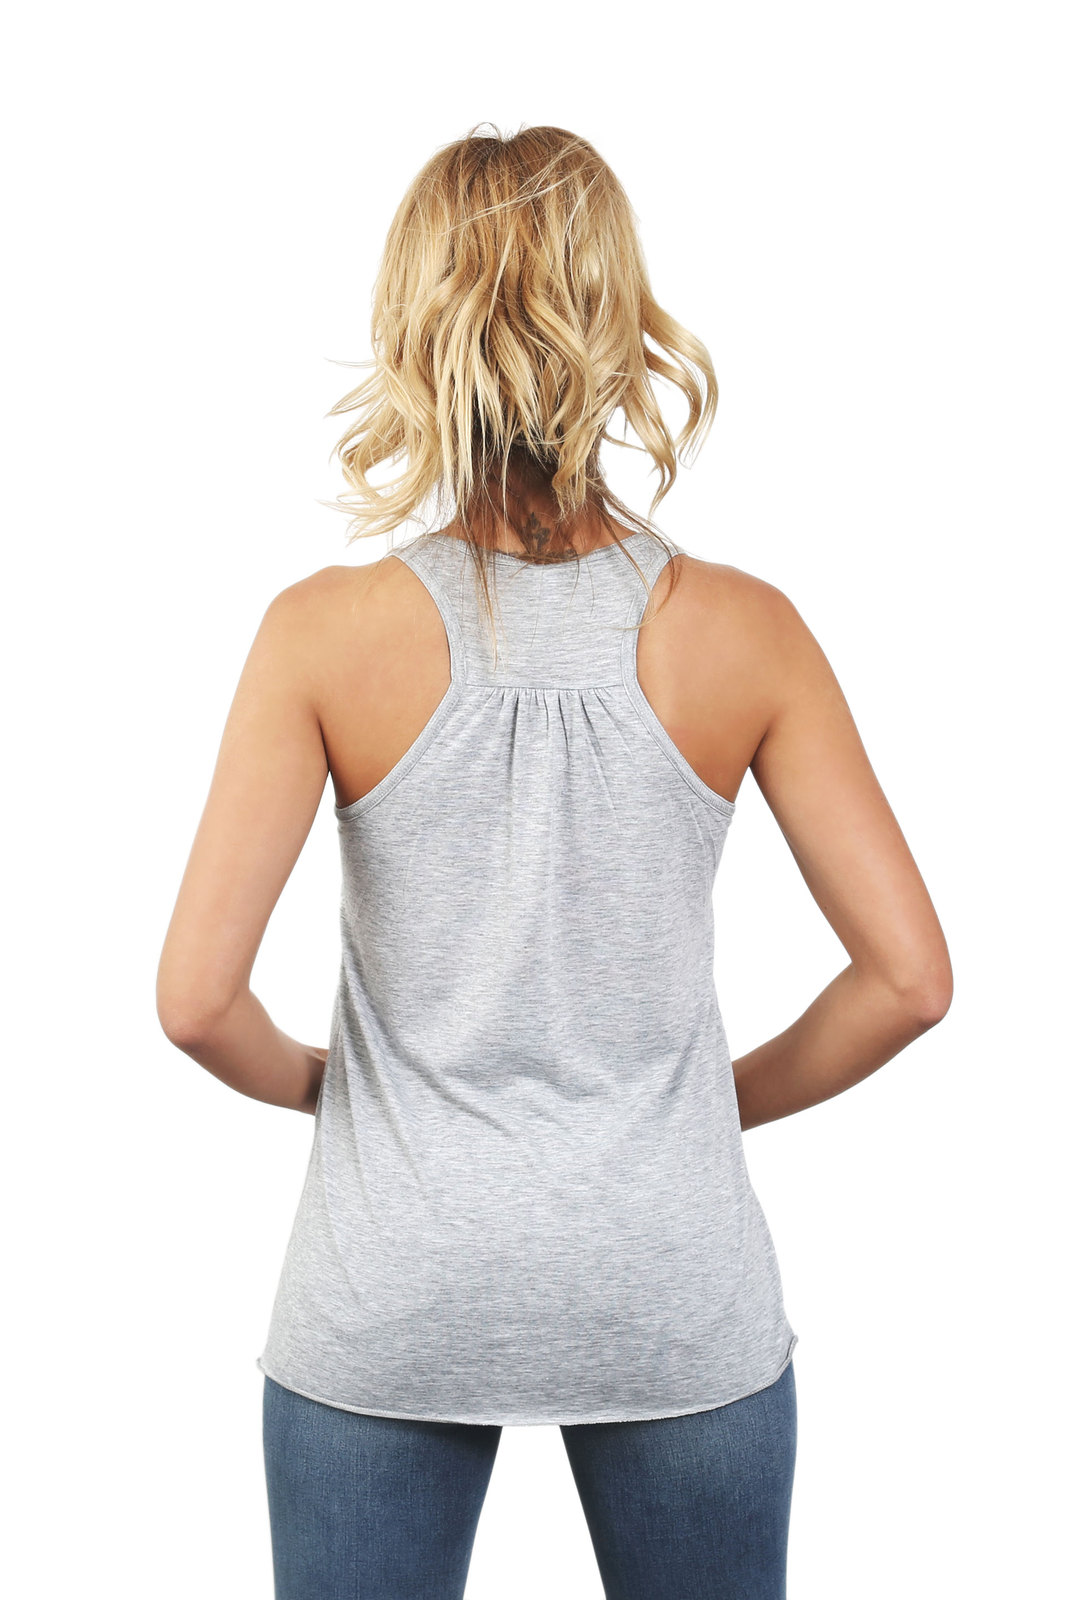 Thread Tank Good Mood Women's Sleeveless Flowy Racerback Tank Top Sport Grey